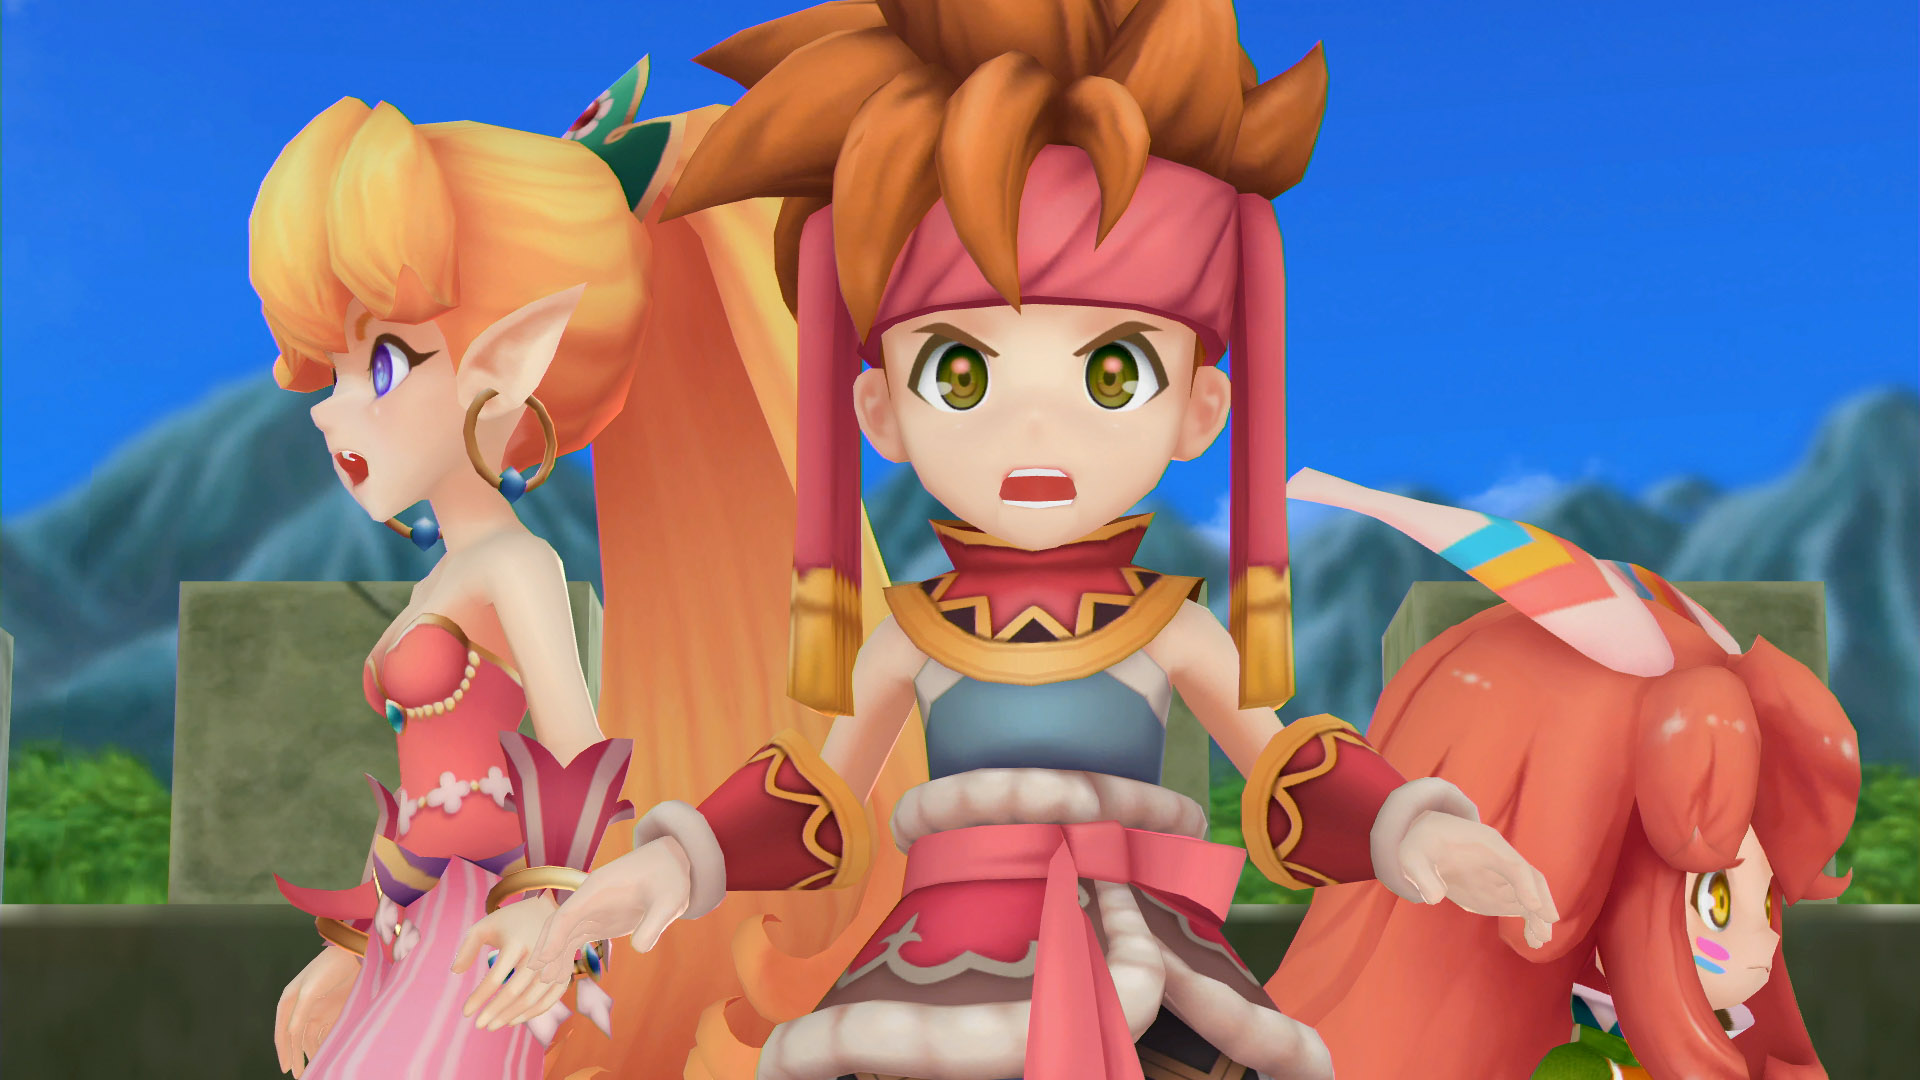 Secret_of_Mana_Out_Now_Screenshot_01_1518697217